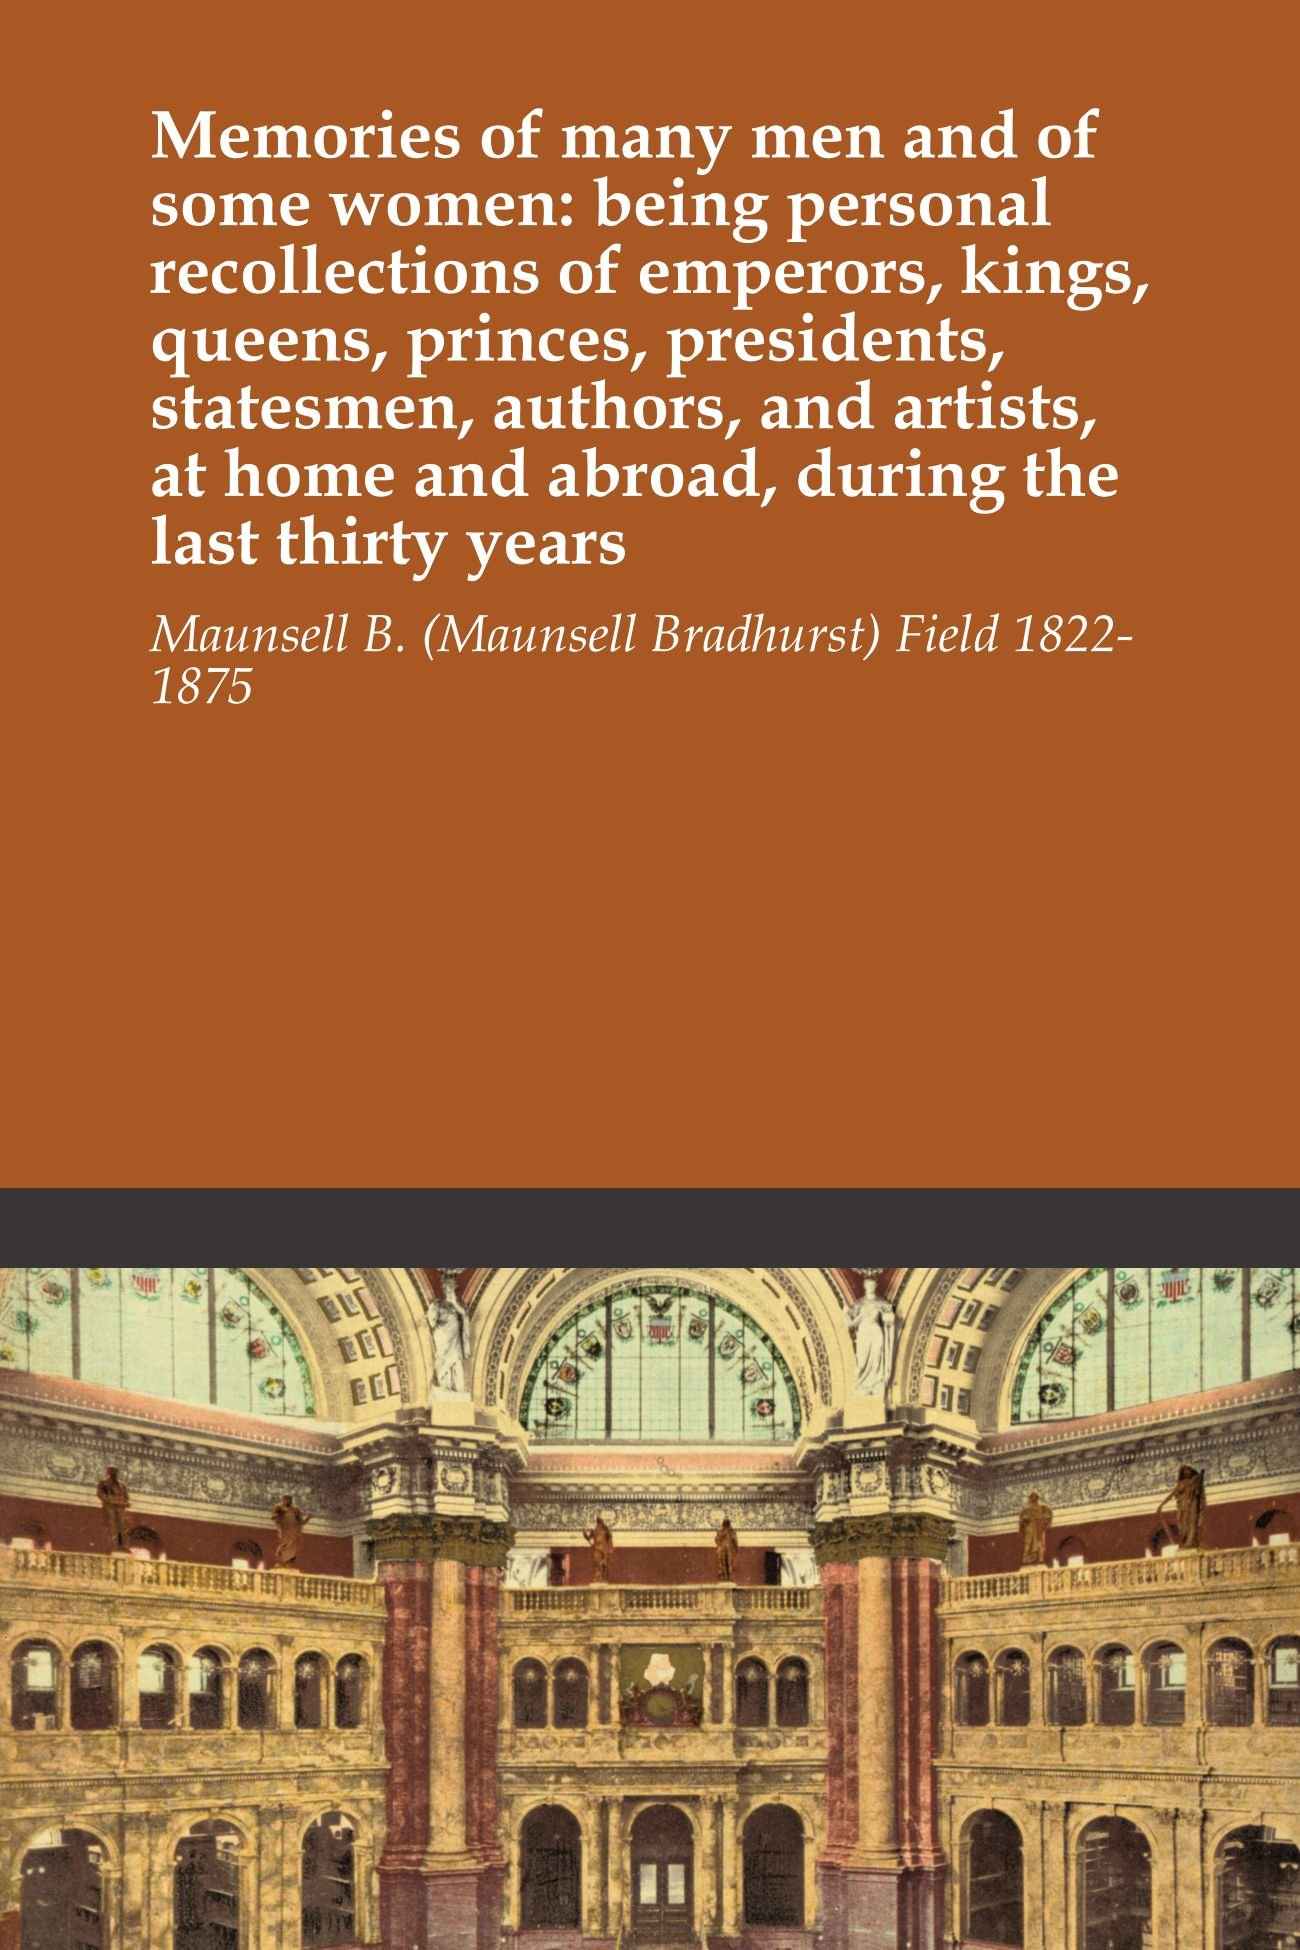 Memories of many men and of some women: being personal recollections of emperors, kings, queens, princes, presidents, statesmen, authors, and artists, at home and abroad, during the last thirty years PDF